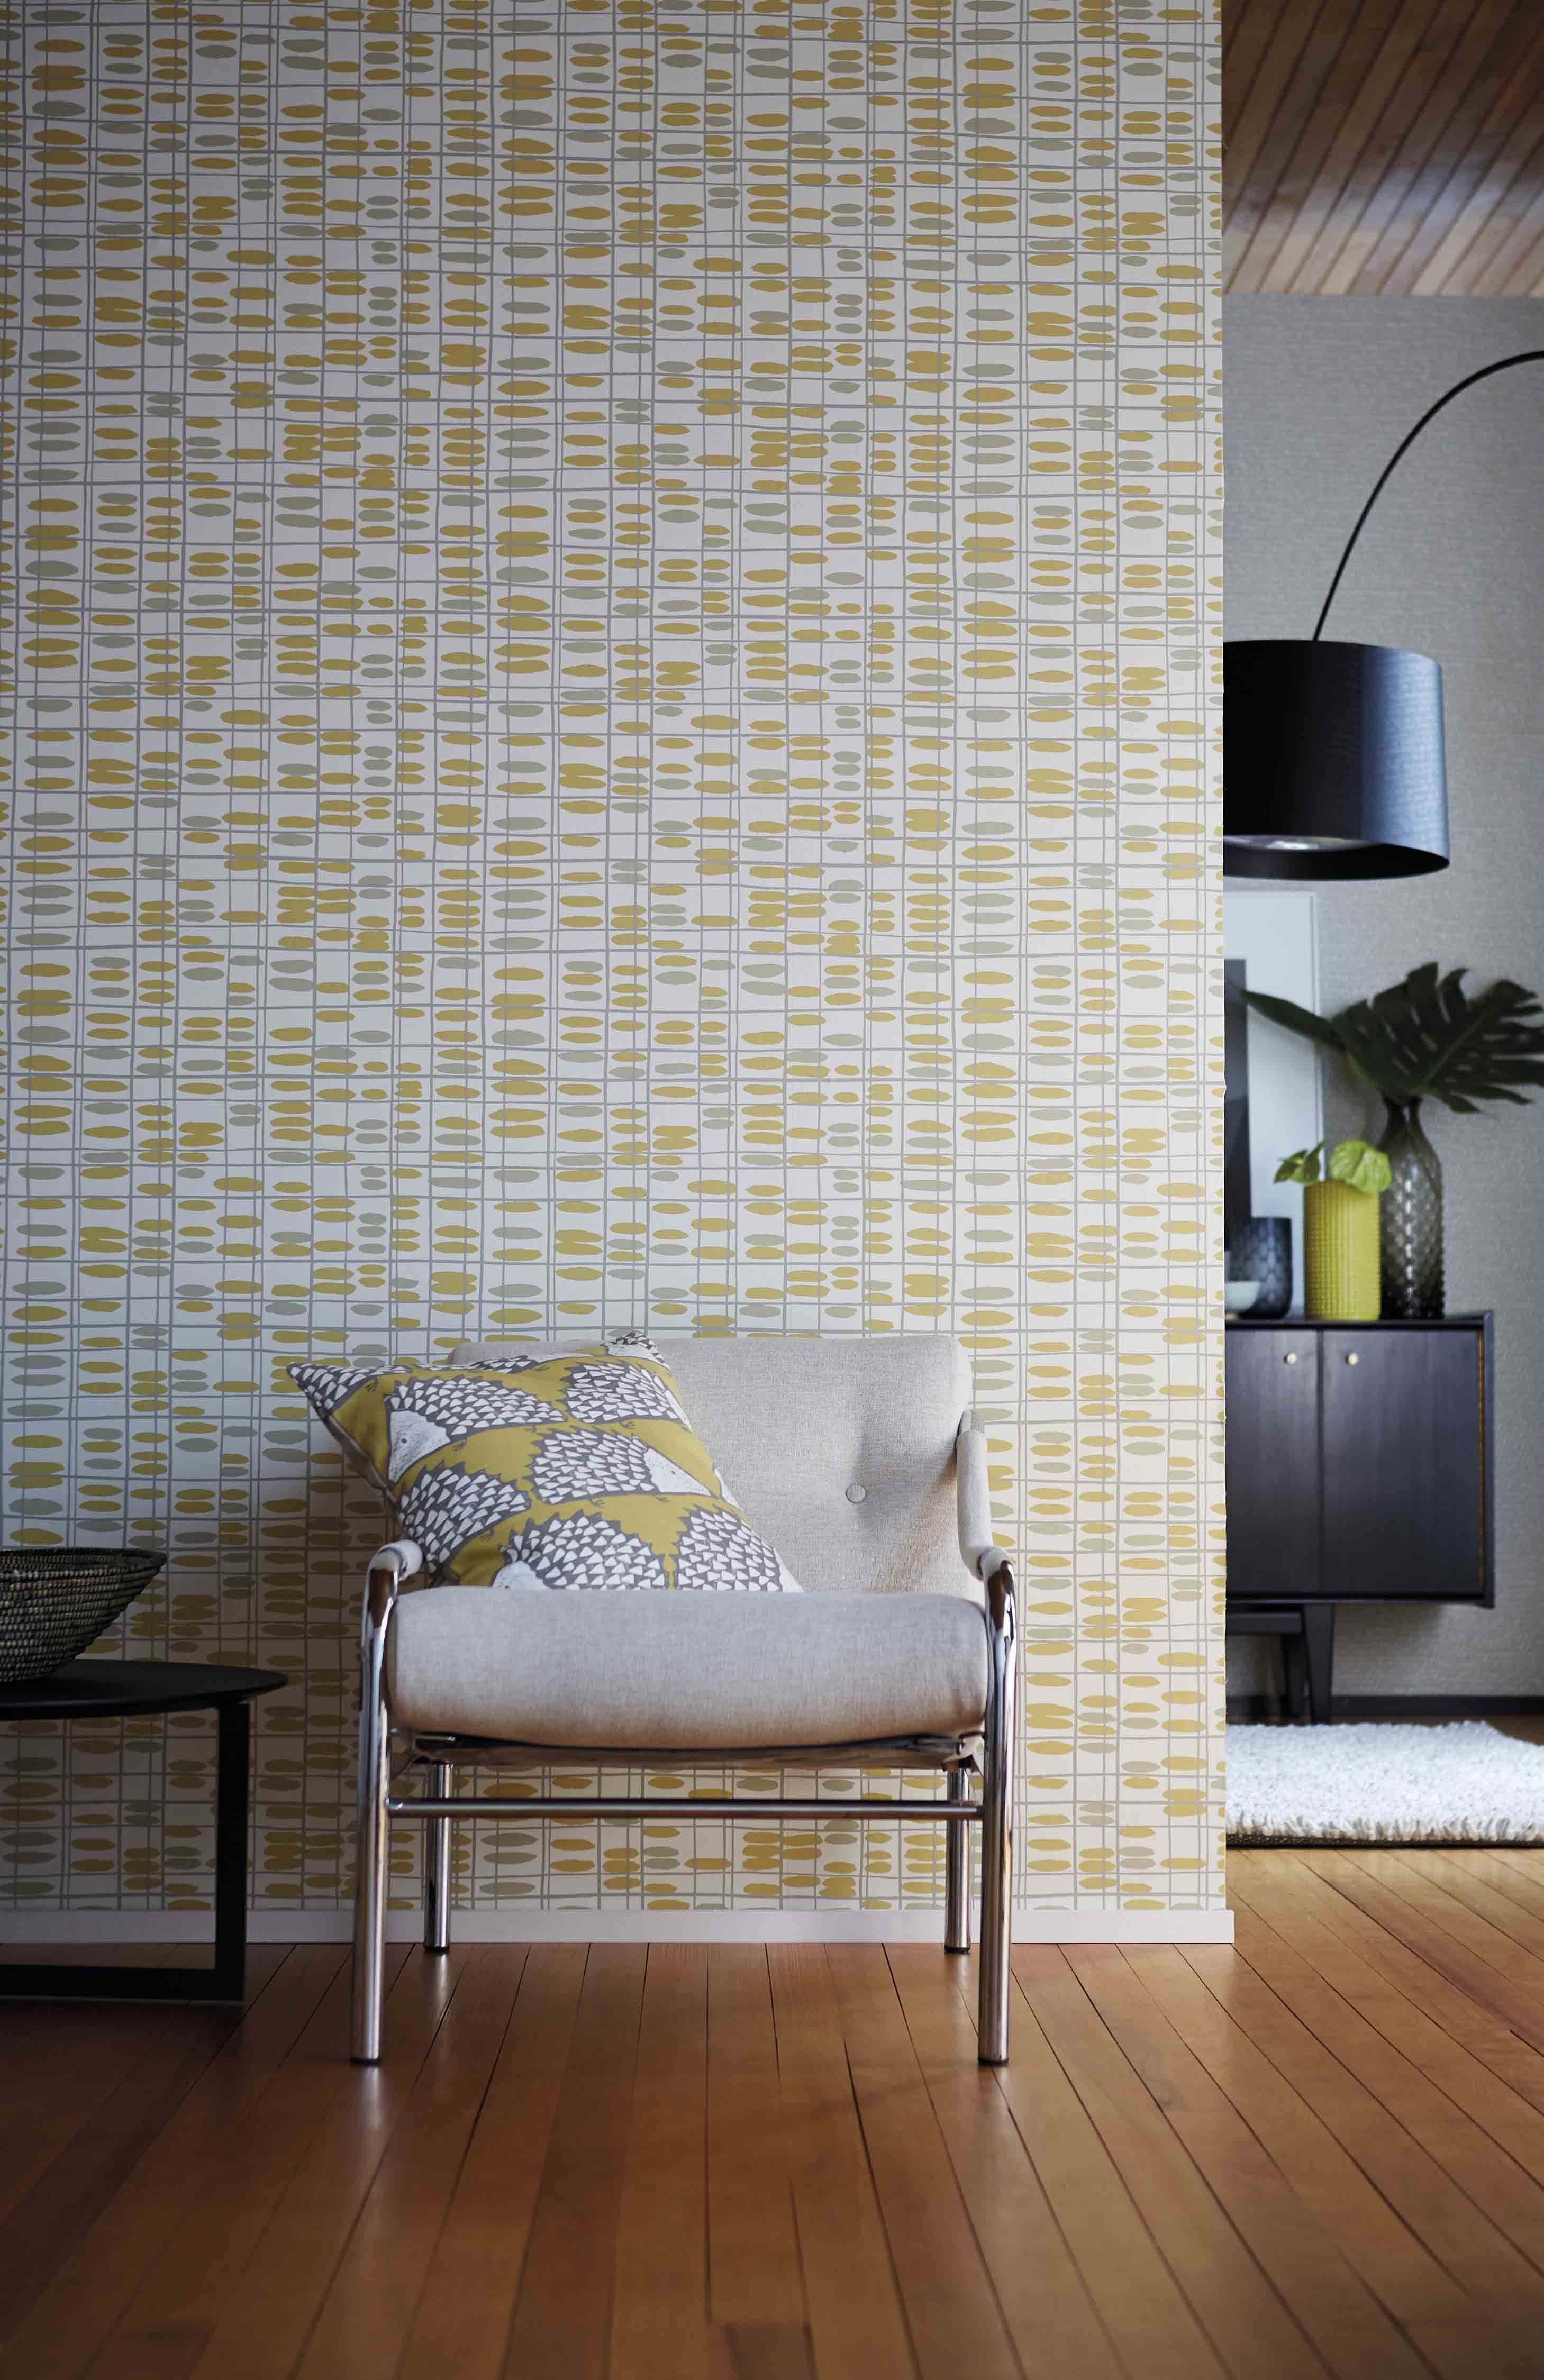 saldo scion s retro inspired geometric wallpaper is a quirky grid rh pinterest at